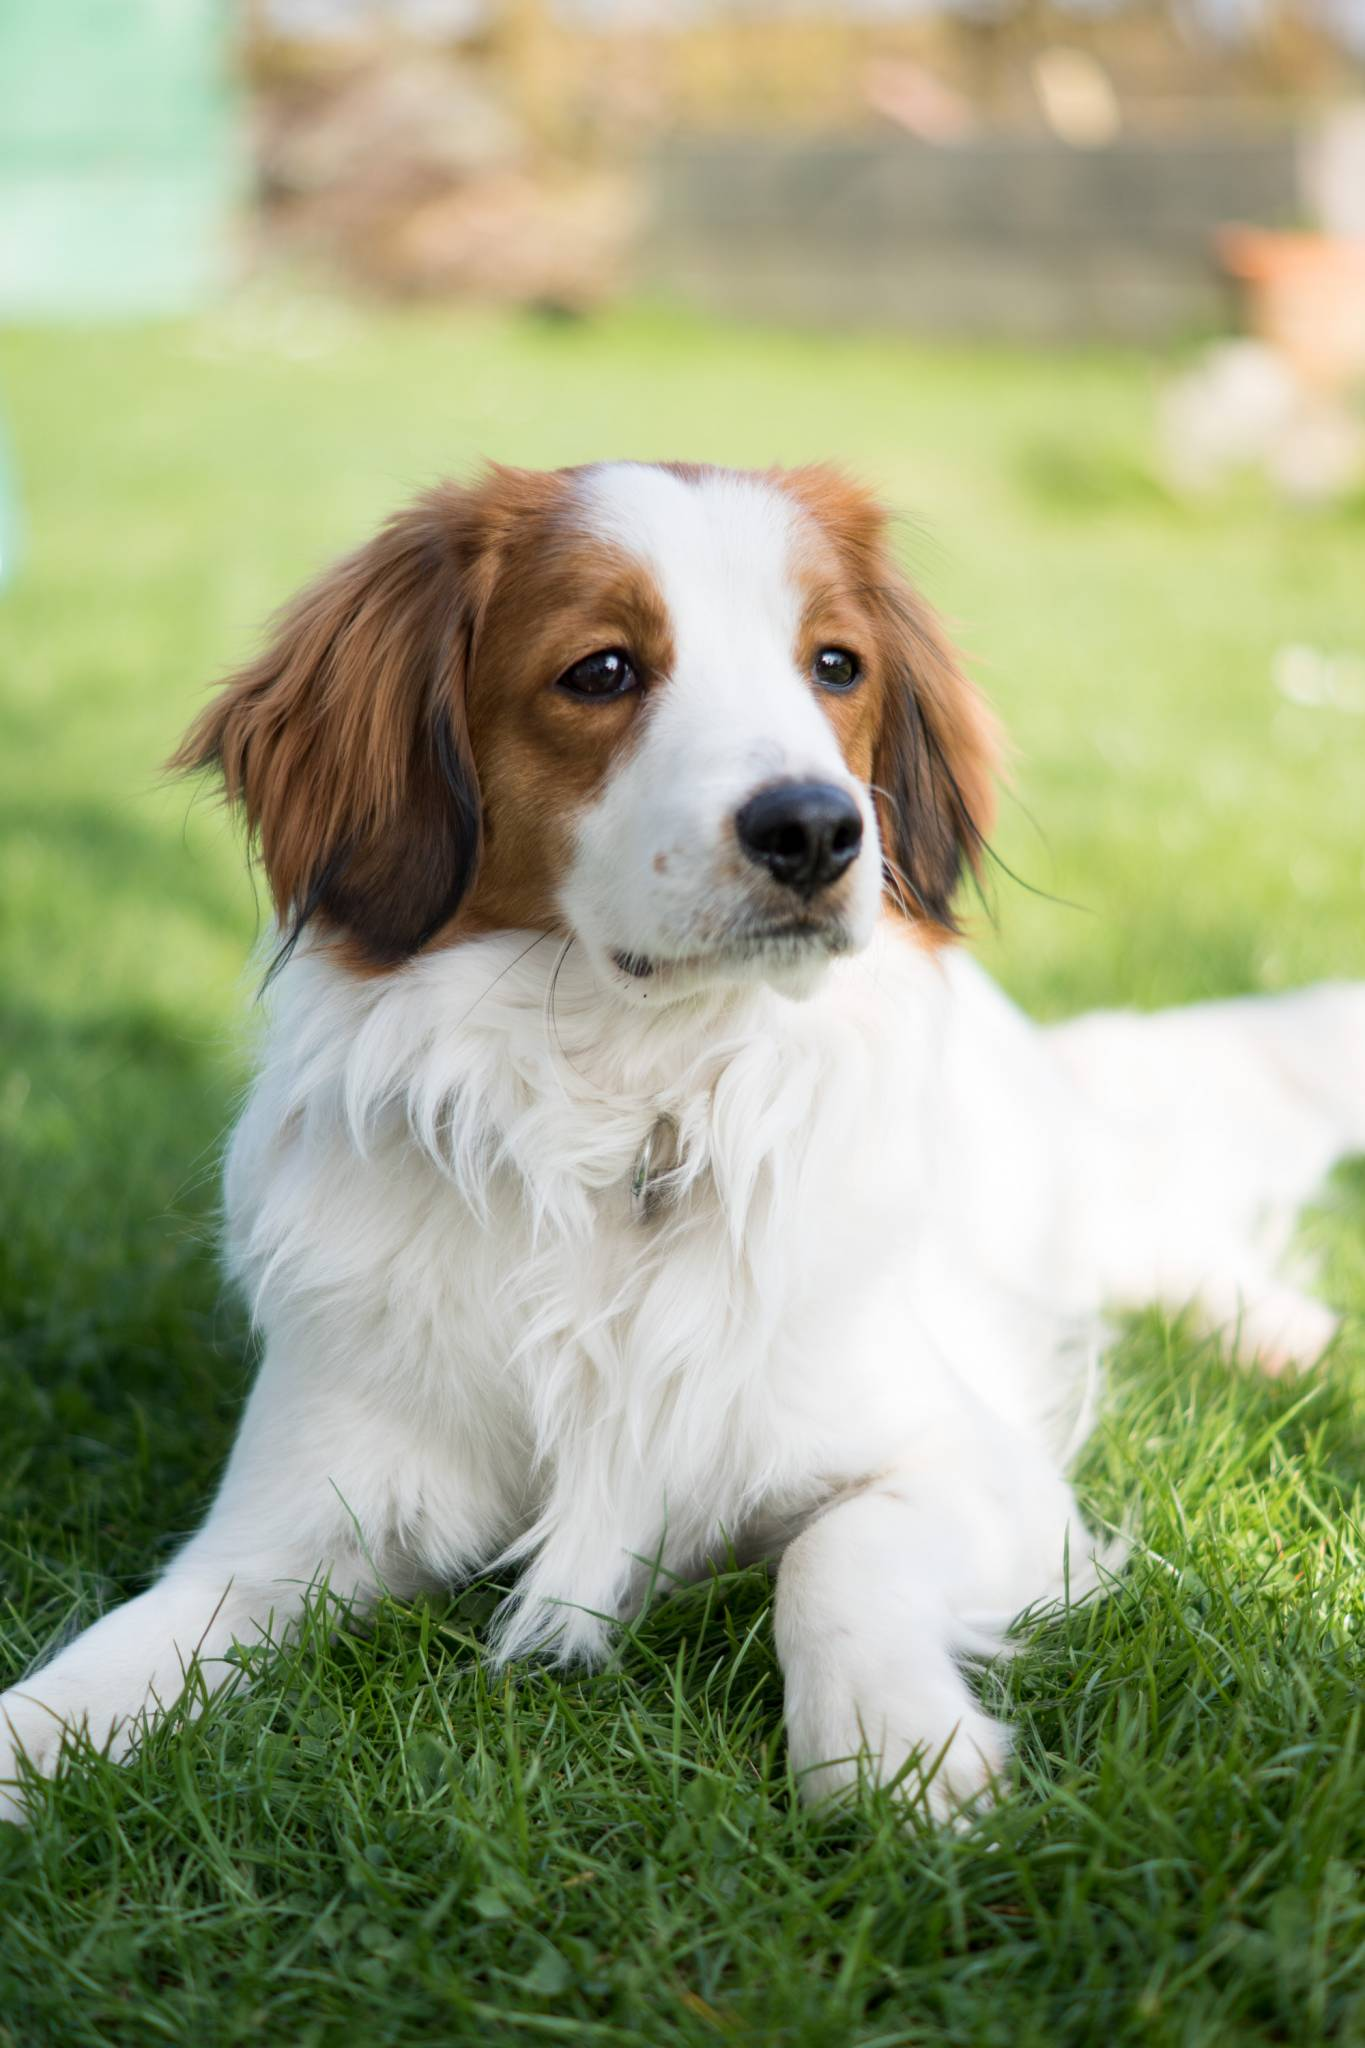 Takeover Knut: Happy Birthday to me!, Kooikerhondje, Knut, Kolumne, amigaprincess, Blogger